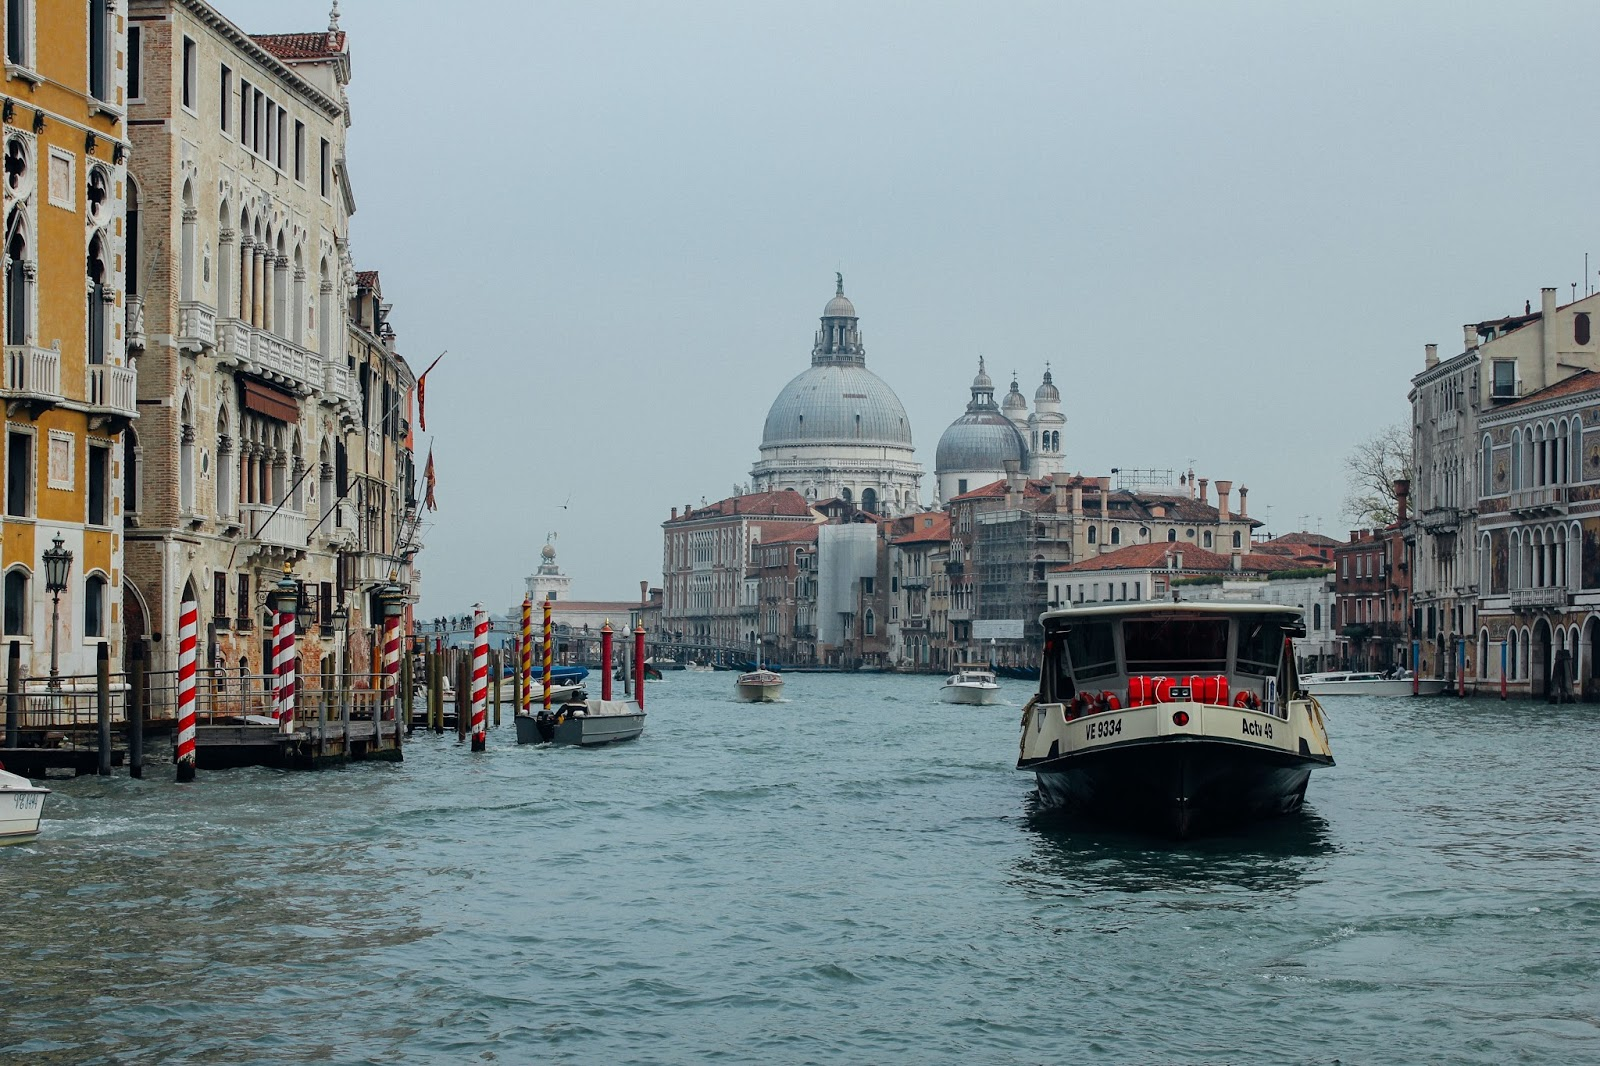 Planning a trip to Venice, Italy